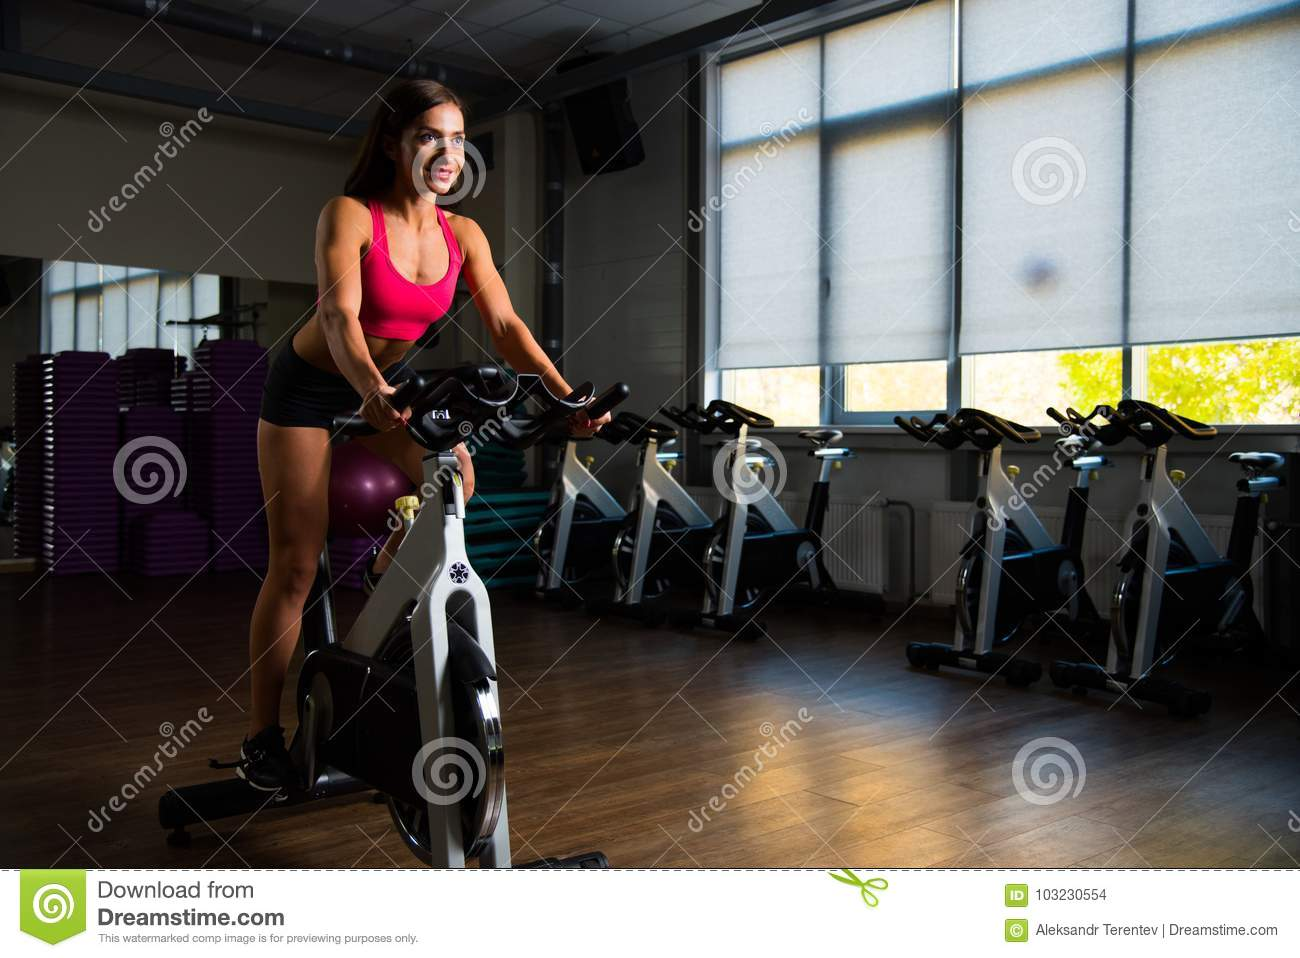 Sporty girl in fitness hall on cycle.